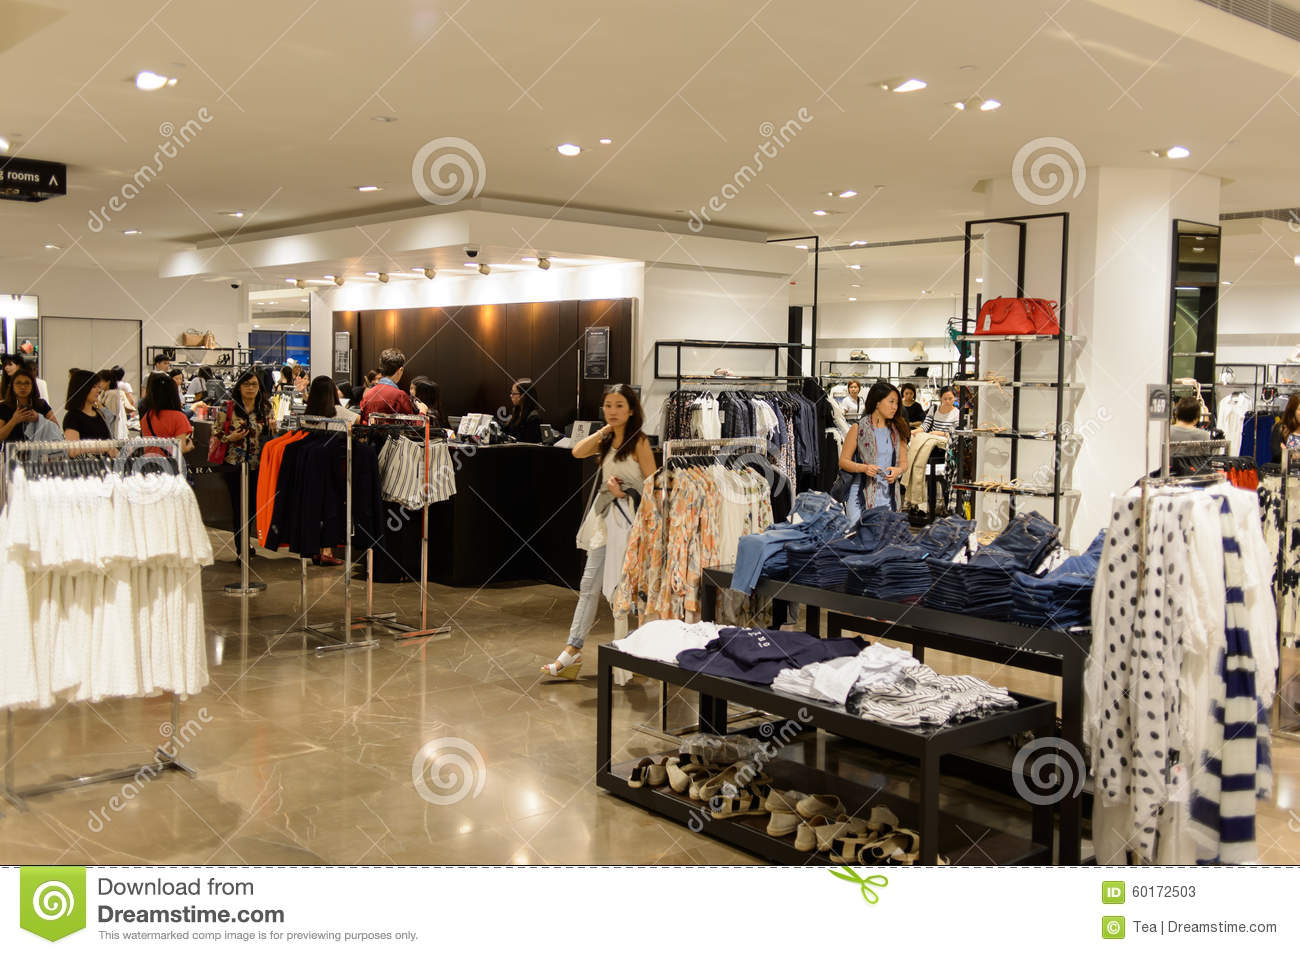 California based clothing stores